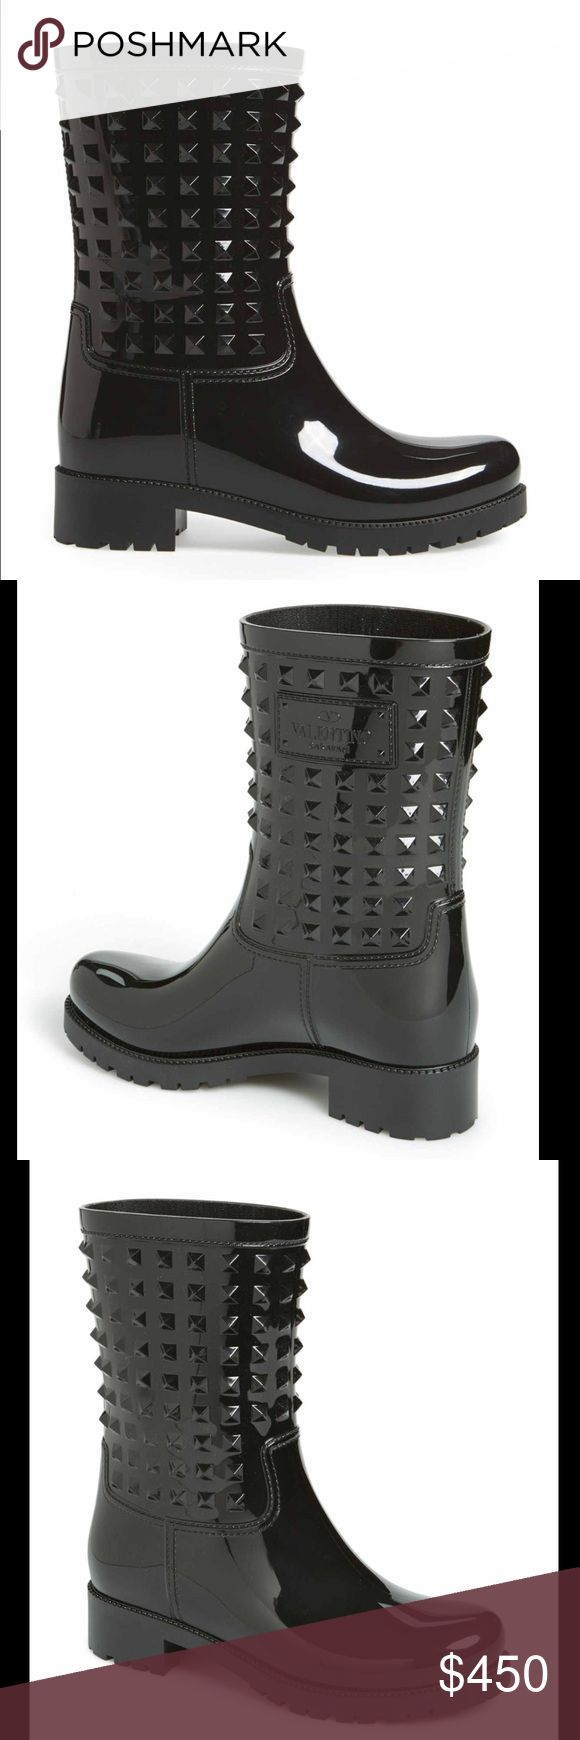 Valentino rock stud rain boots Brand new in box. Size 39. Fit like an 8 in my opinion. Valentino Shoes Winter & Rain Boots